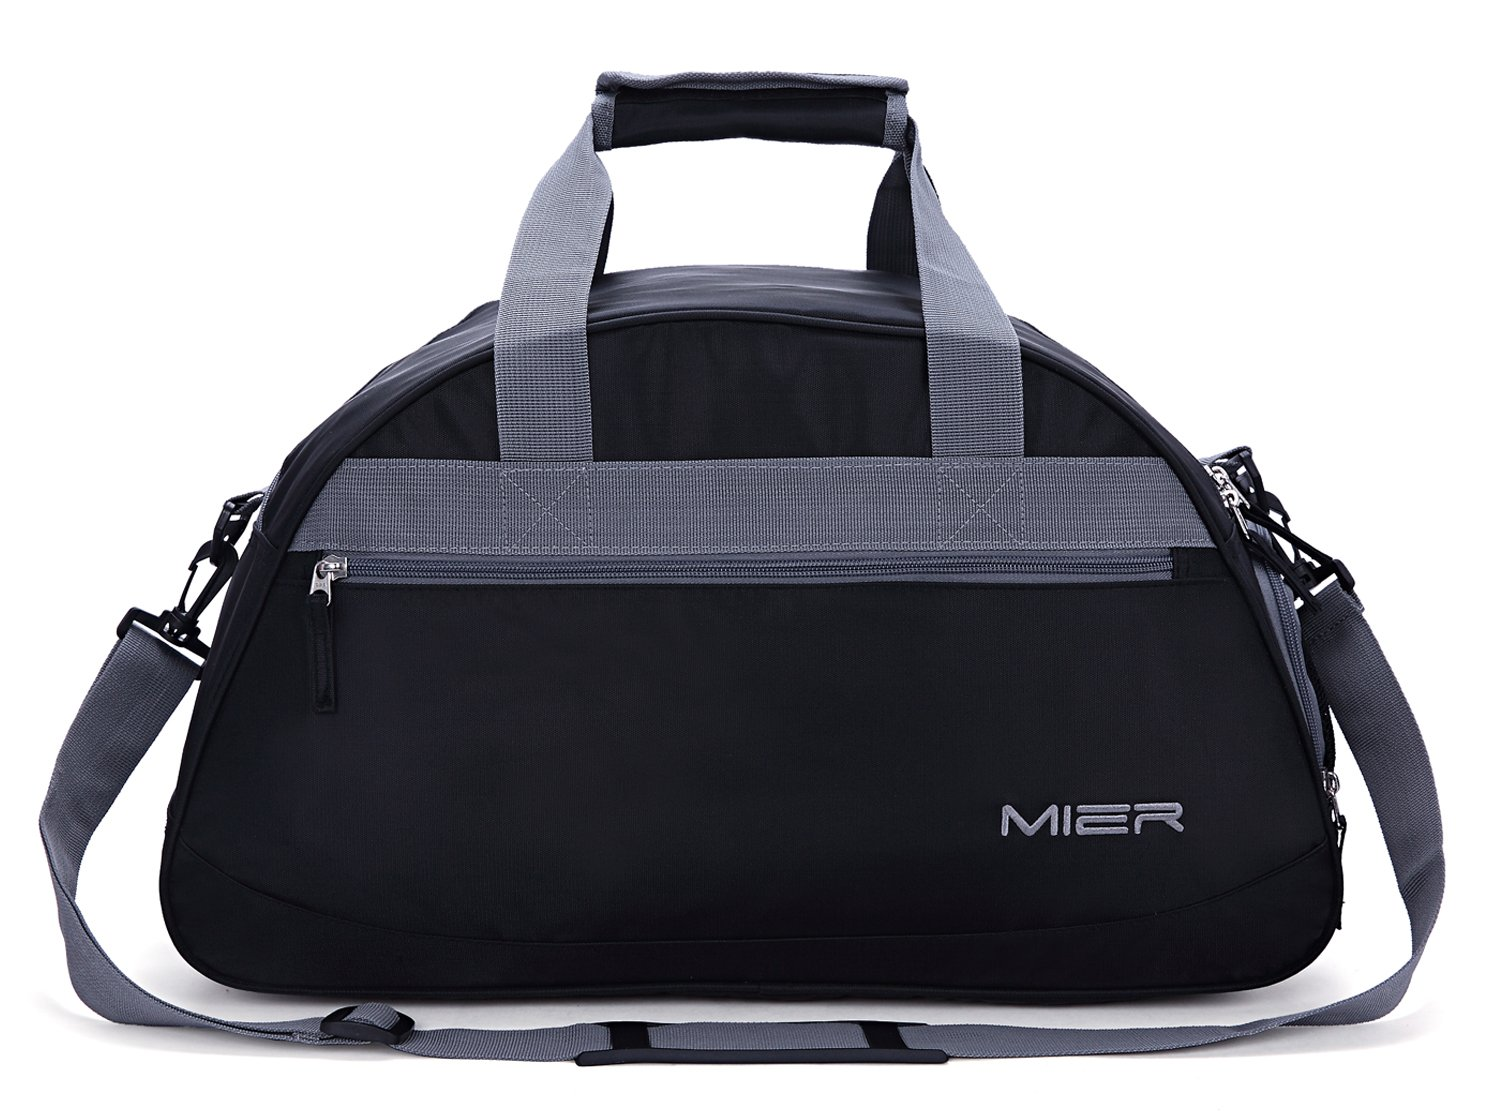 MIER Gym Bag Sports Holdall Weekend Travel Duffel Bag with Shoes Compartment  for Women and Men f798483ab61f3